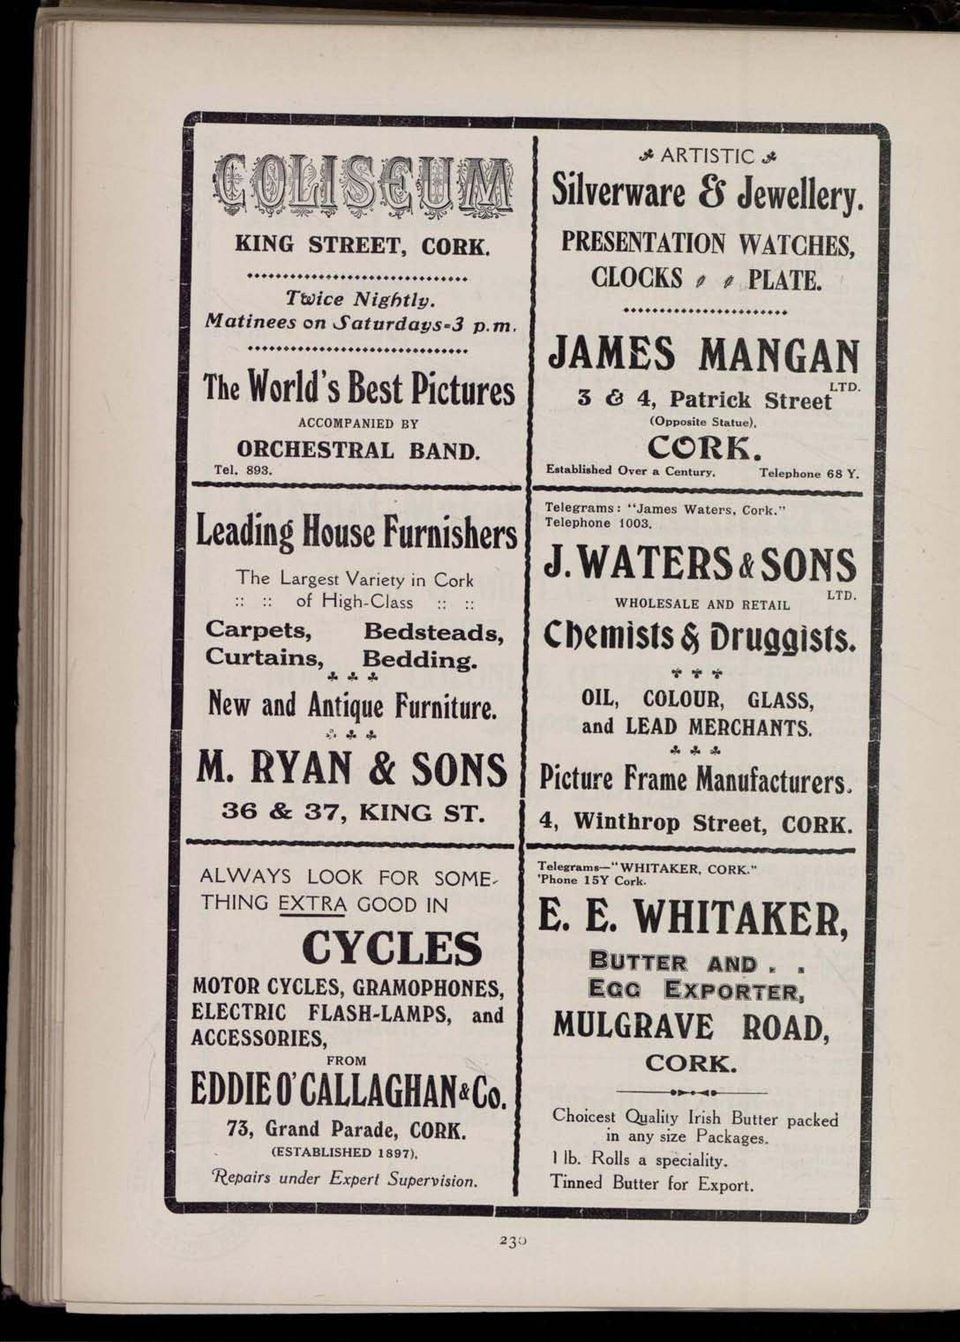 "PRESENTATION WATCHES, CLOCKS / # PLATE. JAMES MANGAN 3 6 4, Patrick Street (Opposite Statue), CORK. Established Over a Century. Telephone 68 Y. Telegrams : ""James Waters, "" Telephone 1003. J. WATERS «SONS LTD WHOLESALE AND RETAIL Cl)ciiiisls Druggists."